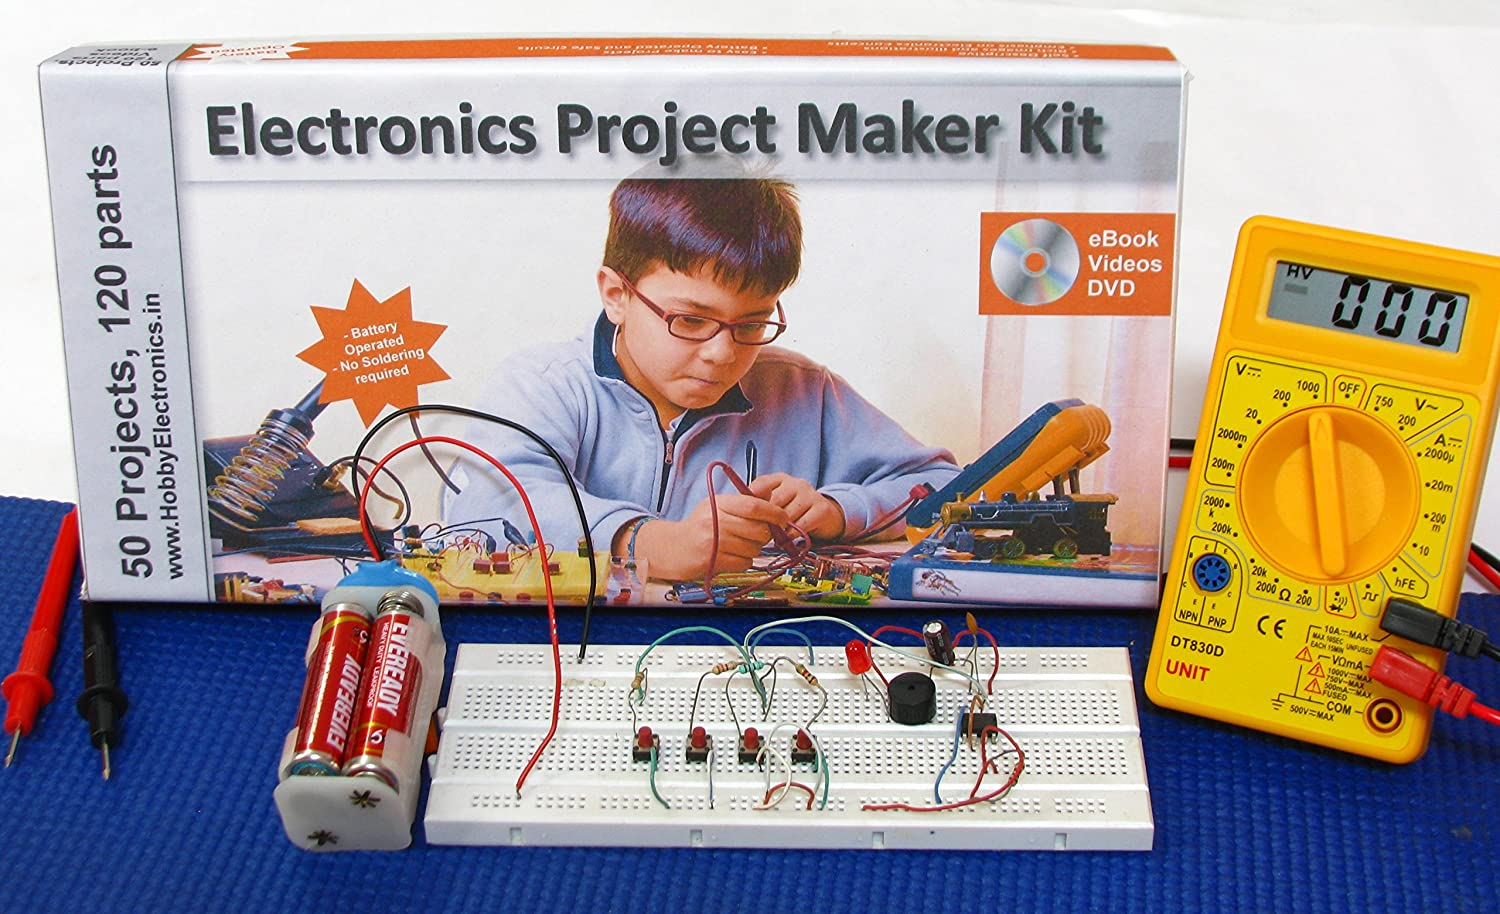 Deepak Enterprise Electronics Project Maker Kit Office Children Hobbyists Or Any Fan About Electronic Circuits Products